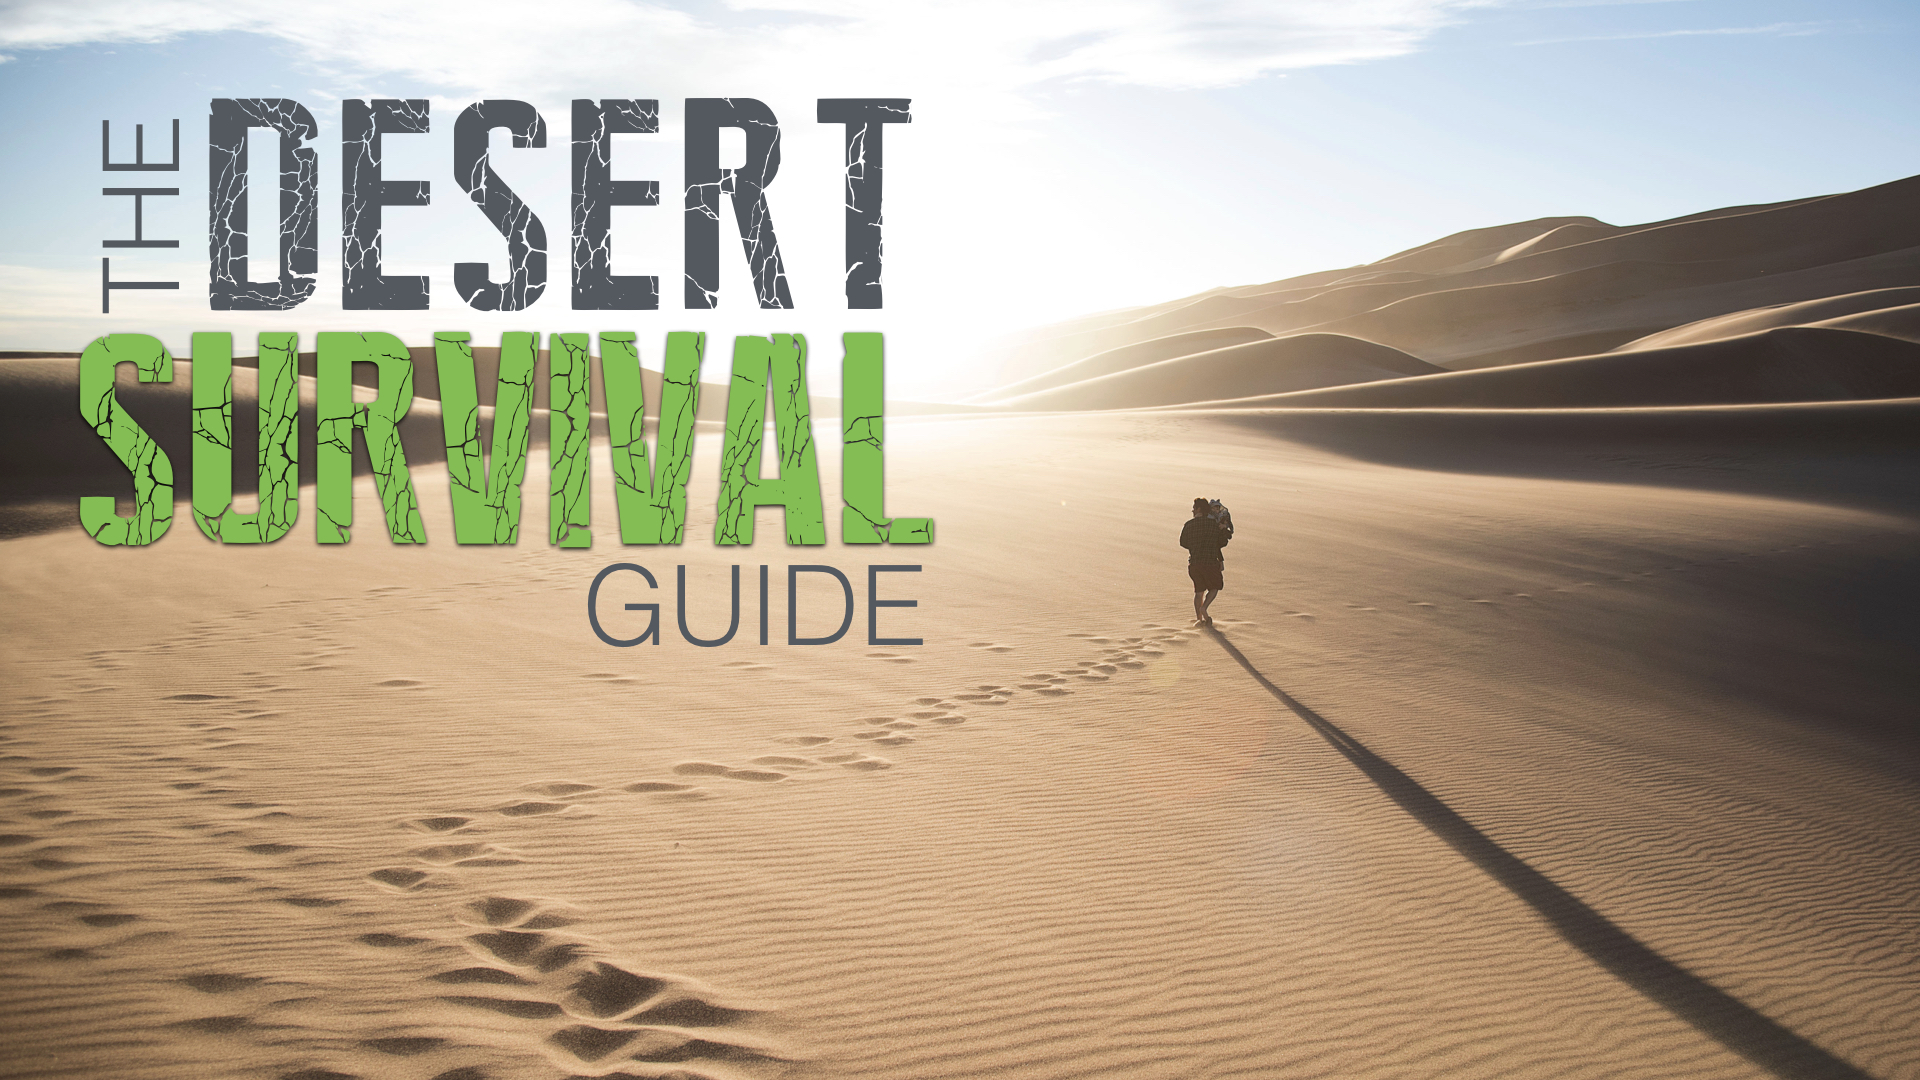 THE DESERT SURVIVAL GUIDE - JACOB BORTNIK | 7.15.2018 | WATCH